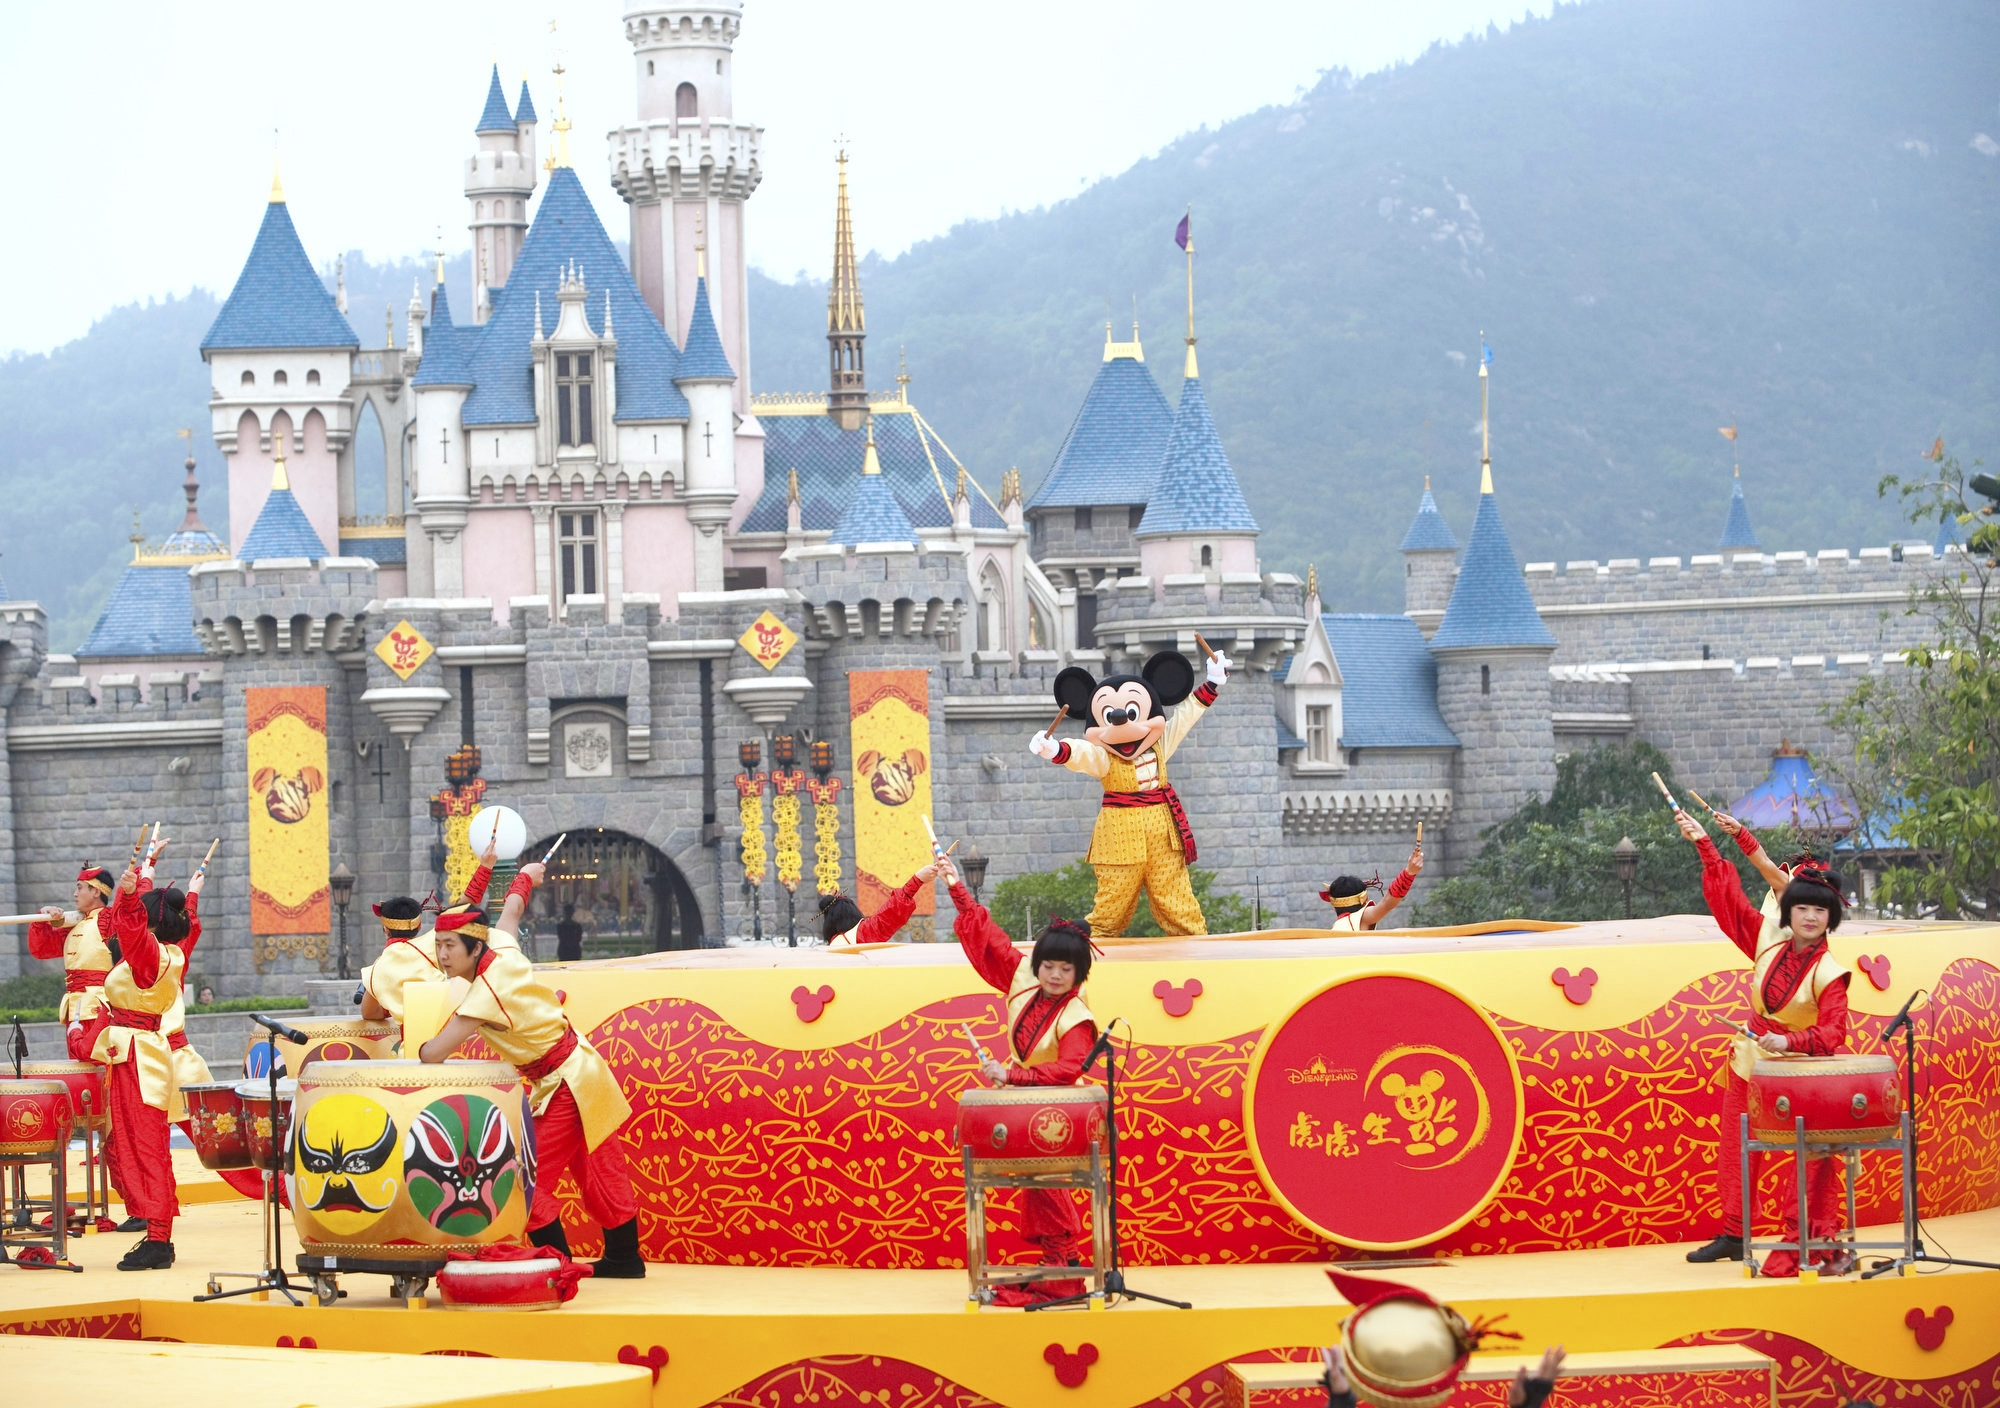 PHOTO MOVED IN ADVANCE AND NOT FOR USE - ONLINE OR IN PRINT - BEFORE NOV. 23, 2014.  In an undated handout photo, a performance at Hong Kong Disneyland. Visiting all 13 Disney parks takes endurance and curiosity about the effect of cultures on a trademark. (Disney via The New York Times) -- NO SALES; FOR EDITORIAL USE ONLY WITH STORY SLUGGED ALL DISNEY PARKS ADV23 BY BROOKS BARNES. ALL OTHER USE PROHIBITED. --